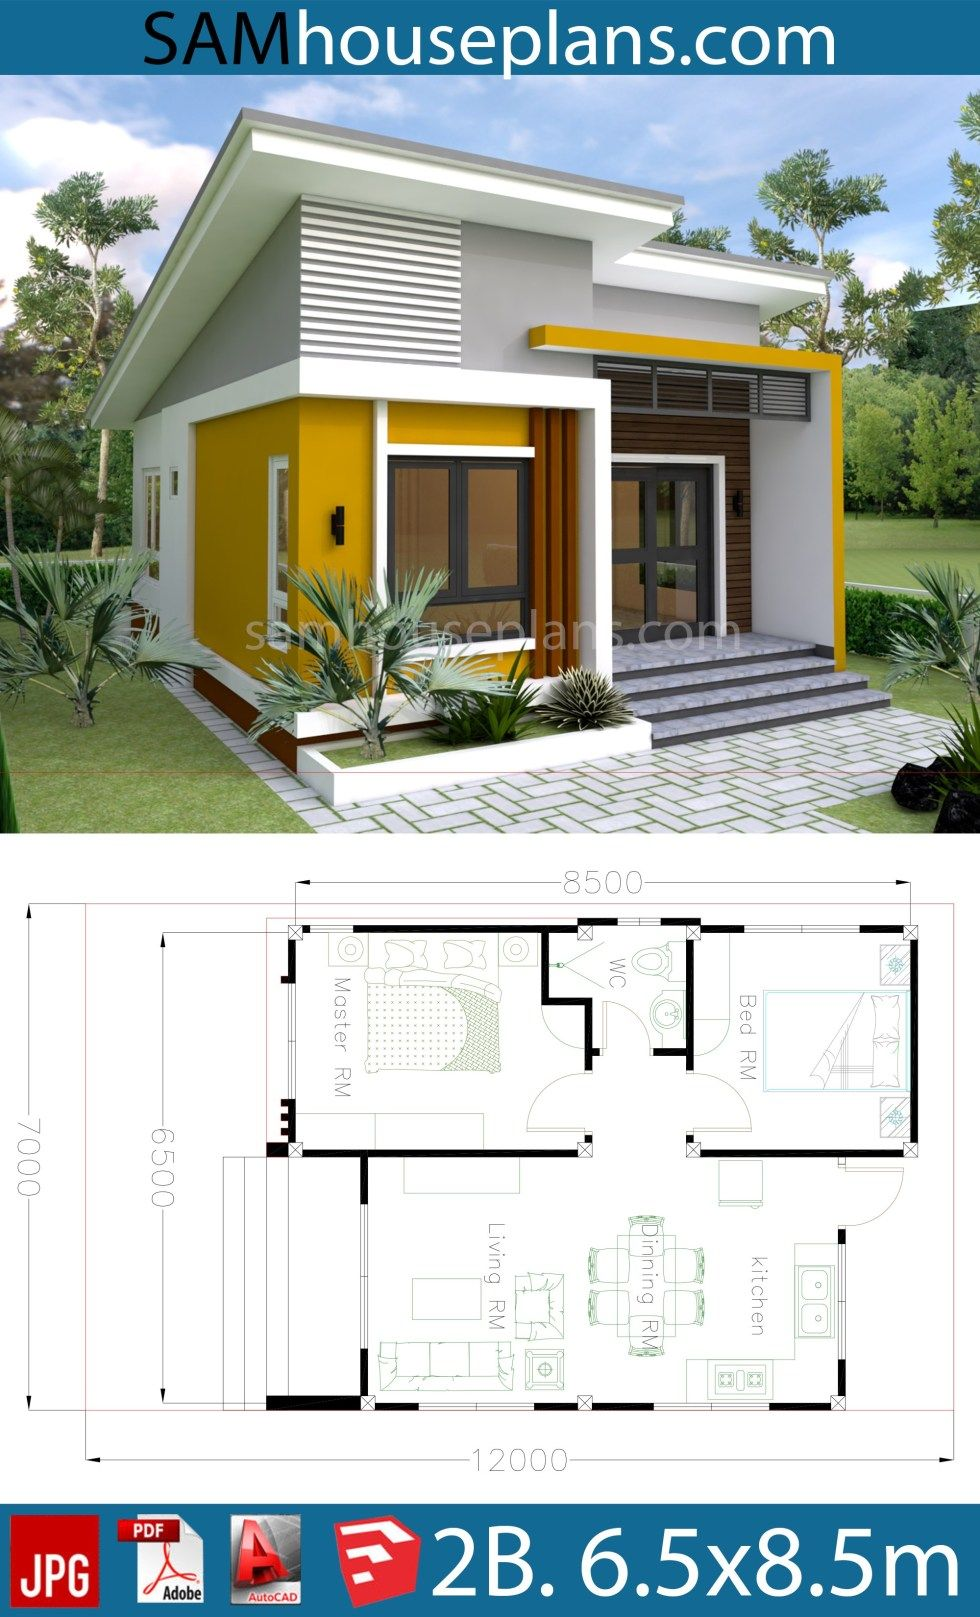 House Plans 6 5x8 5m With 2 Bedrooms Sam House Plans Small House Design Plans Simple House Design Small House Design